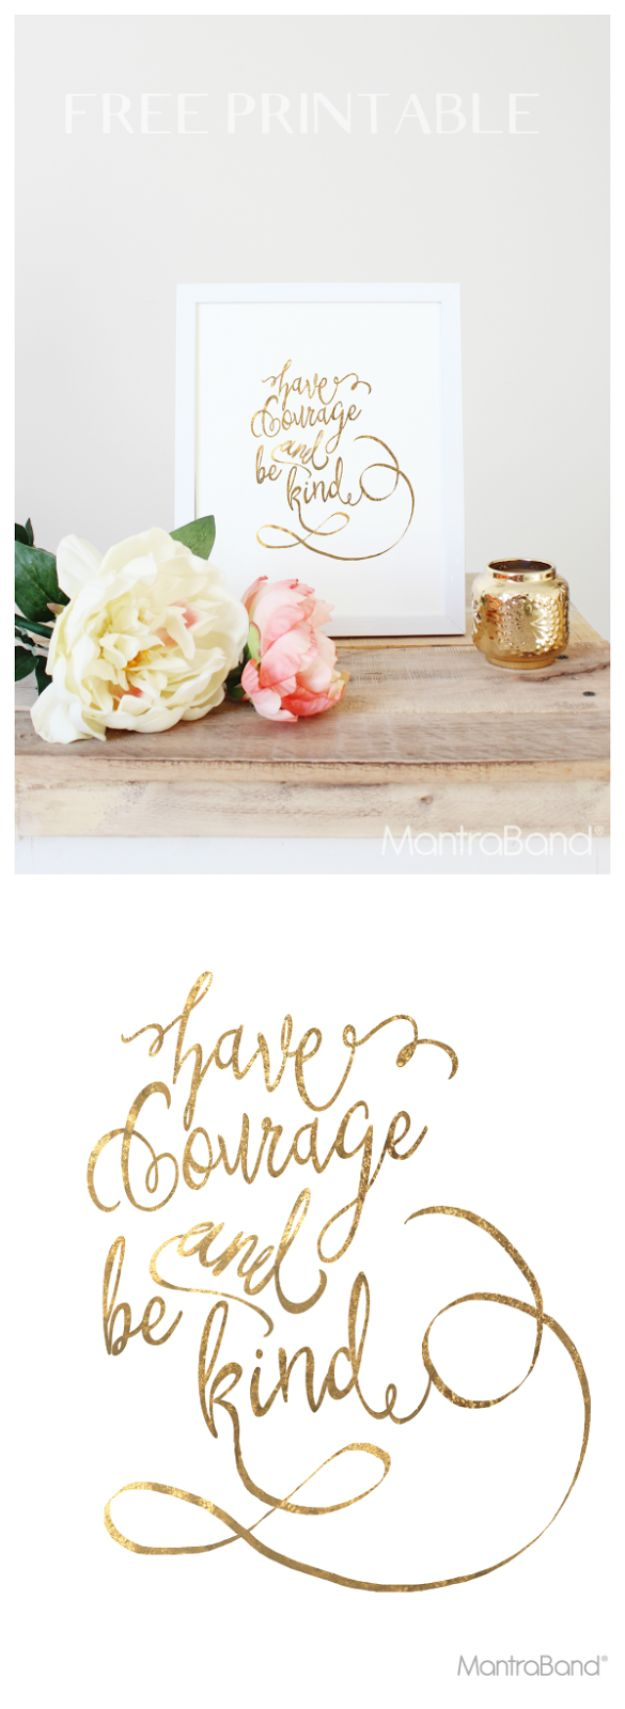 Best Free Printables For Your Walls - Have Courage And Be Kind Printable Quote - Free Prints for Wall Art and Picture to Print for Home and Bedroom Decor - Crafts to Make and Sell With Ideas for the Home, Organization #diy